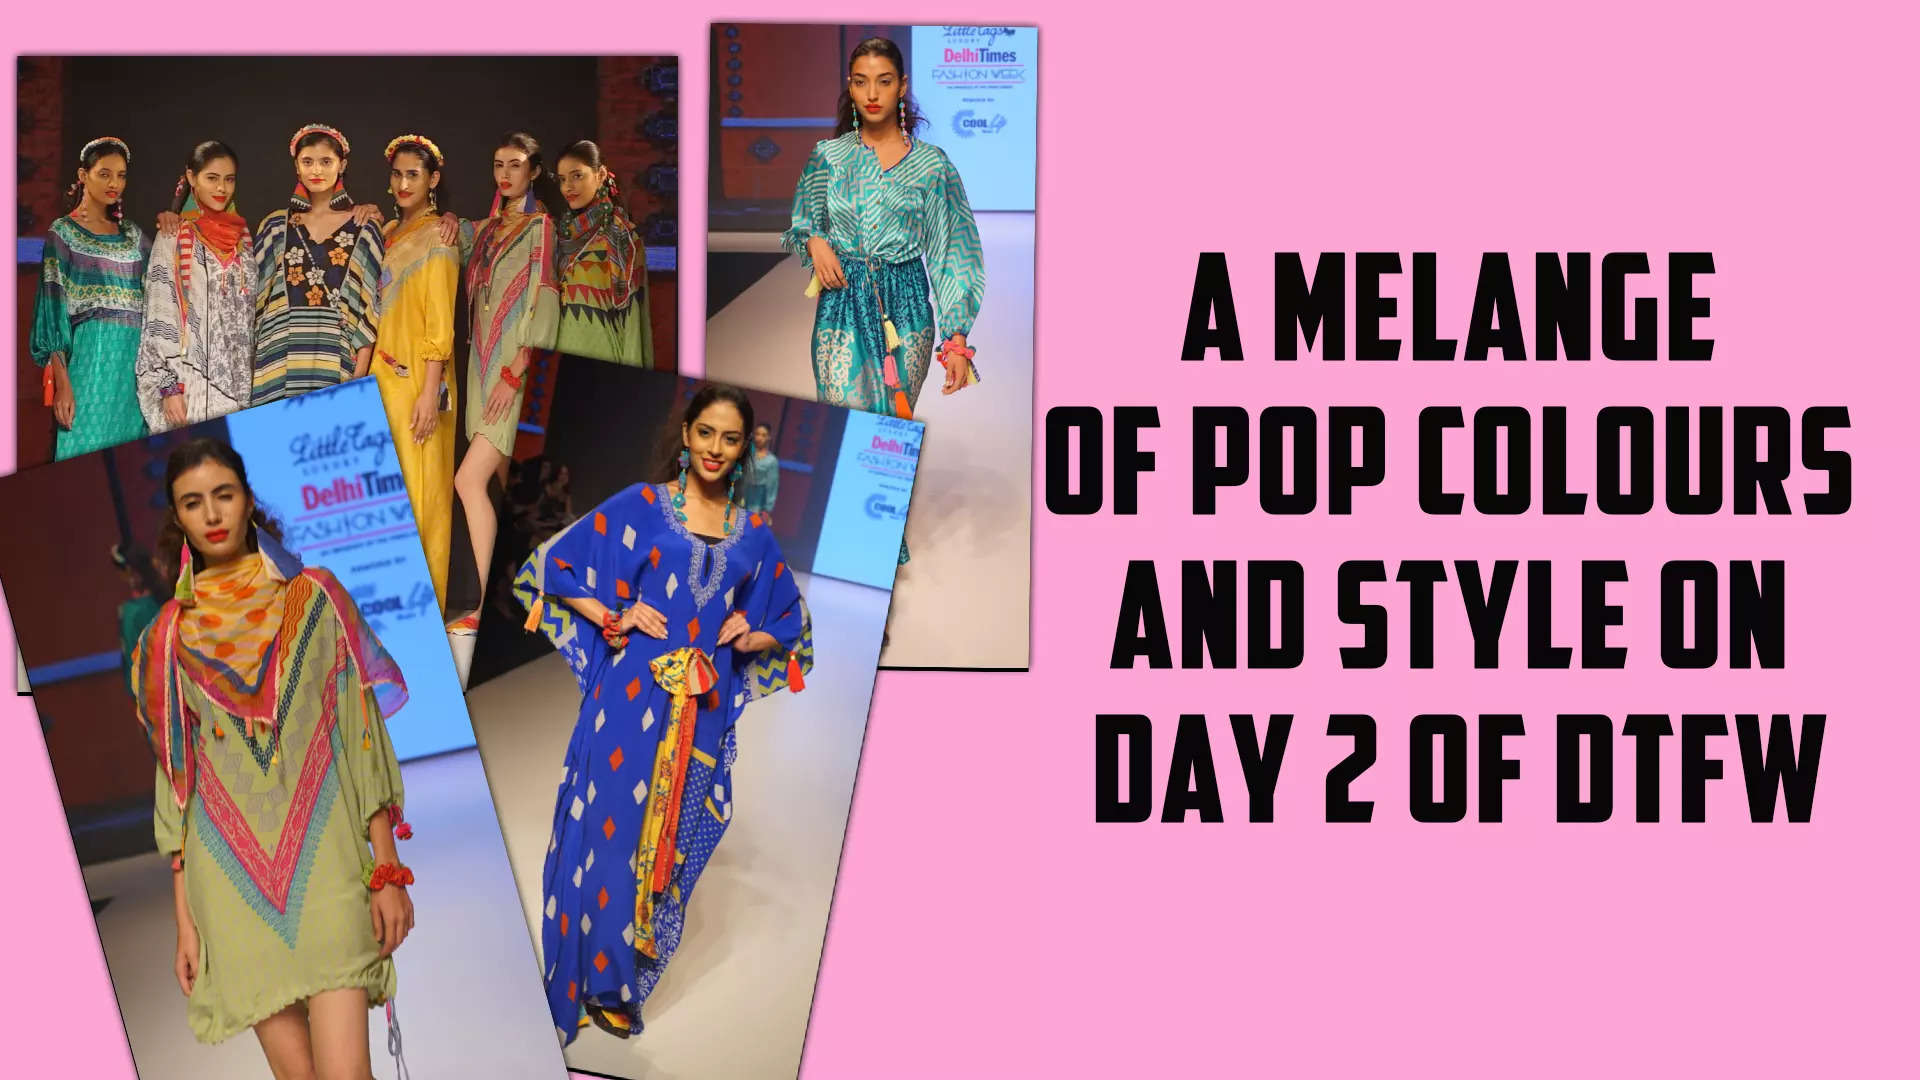 a-melange-of-pop-colors-and-style-at-day-2-of-delhi-times-fashion-week